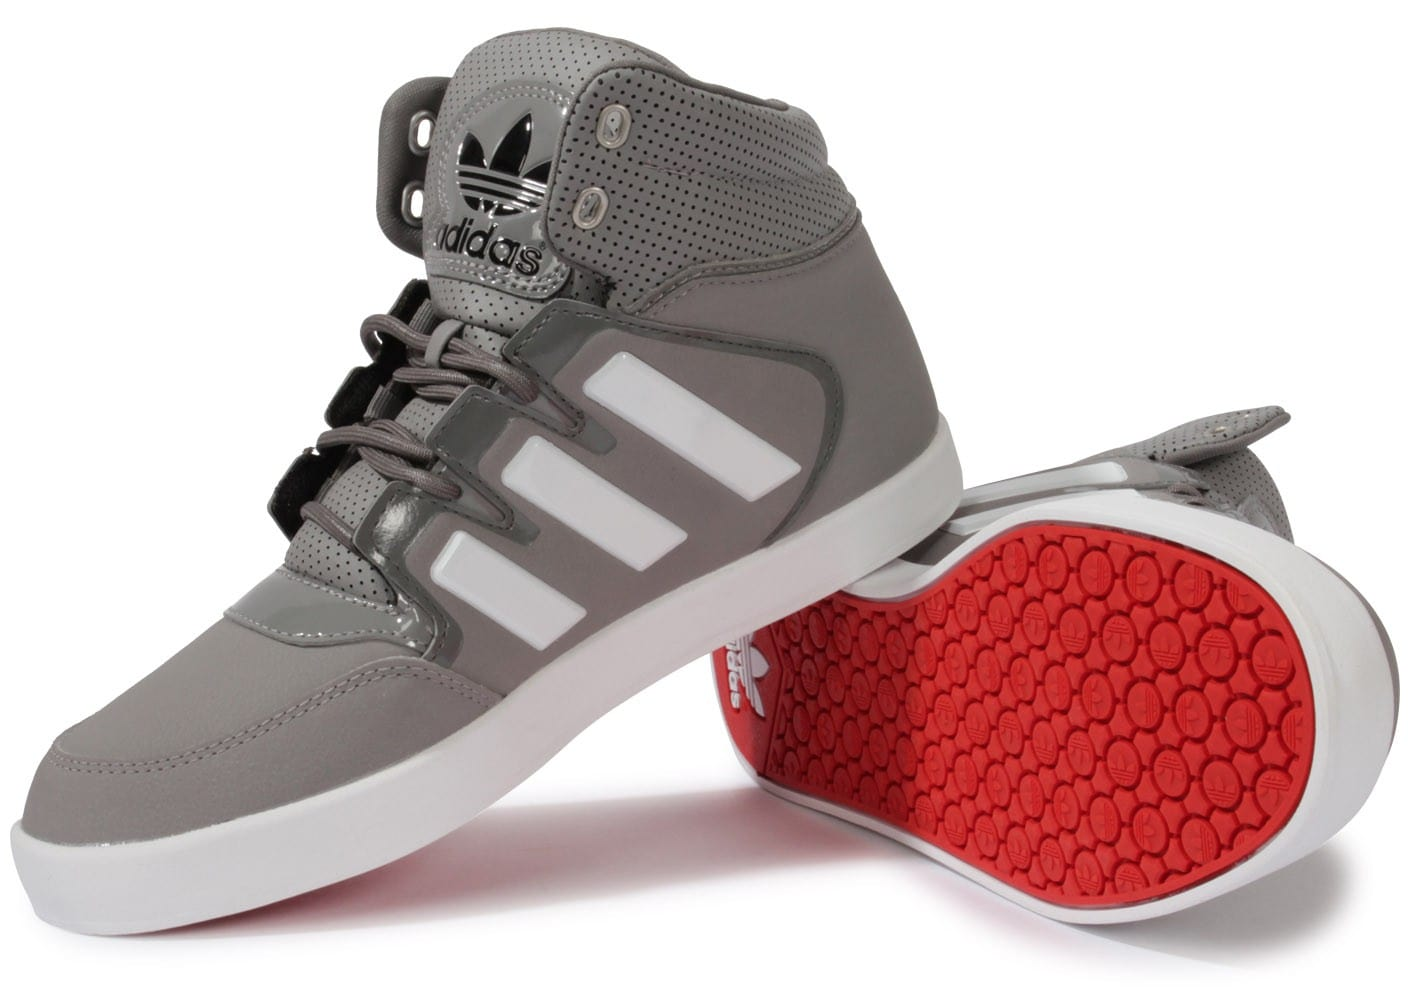 newest 59424 0e319 Chausport Grise Chaussures Baskets Adidas Dropstep Homme c41